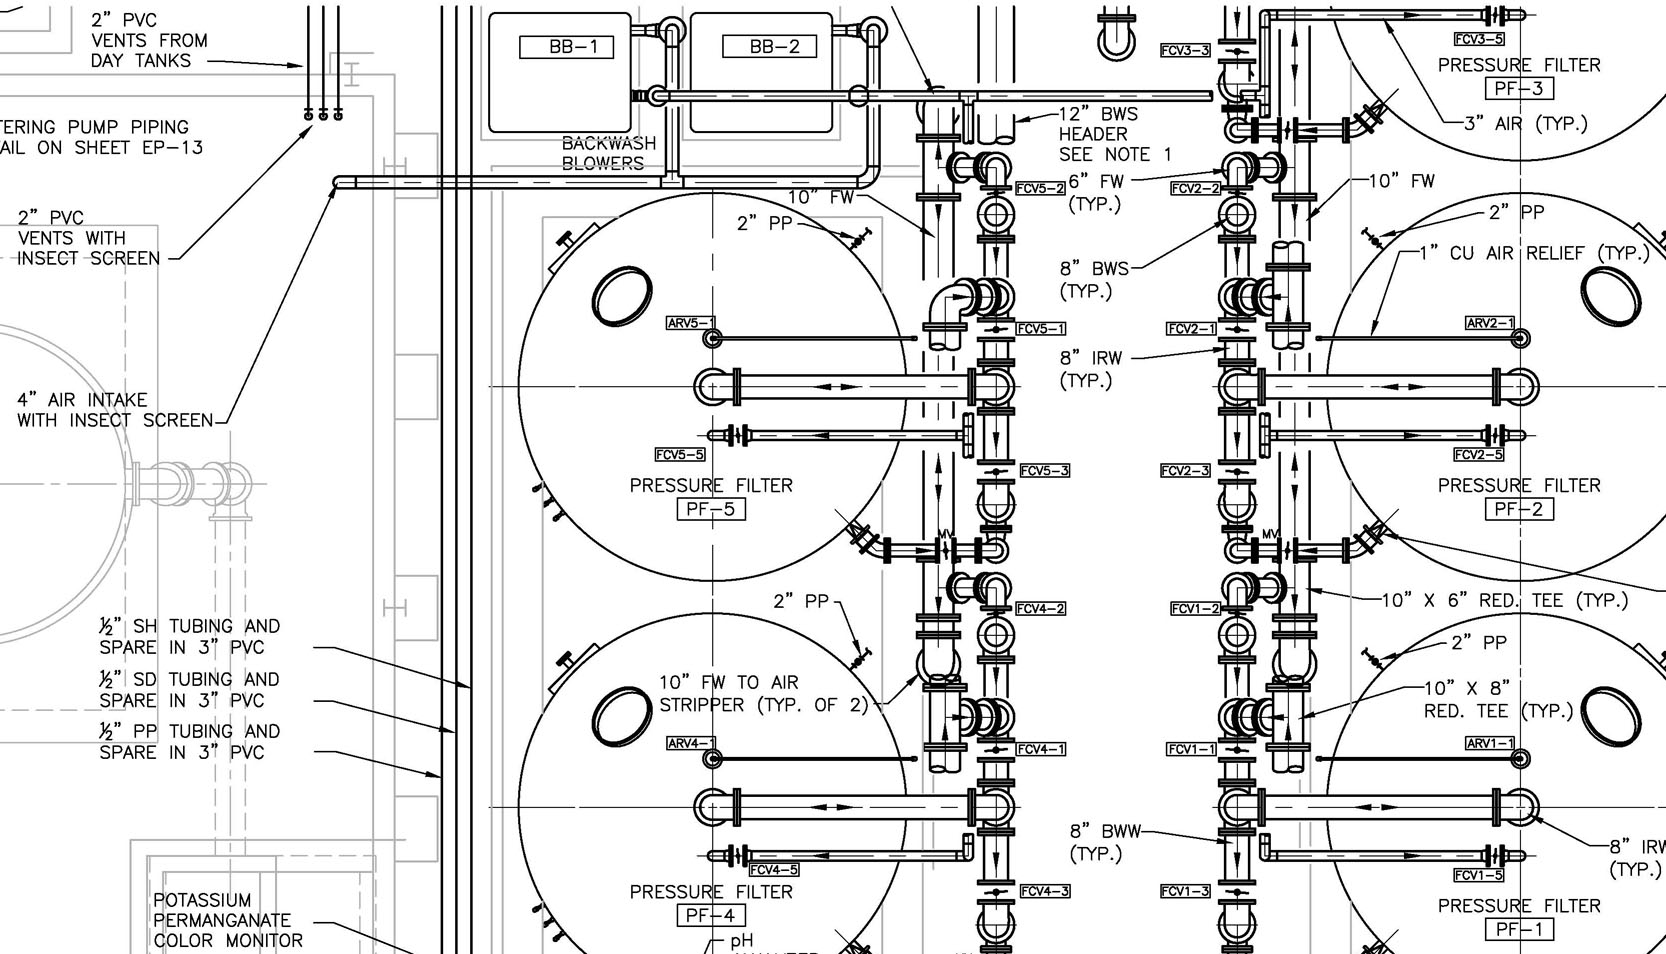 oil refinery layout diagram 3 pin plug wiring usa plant